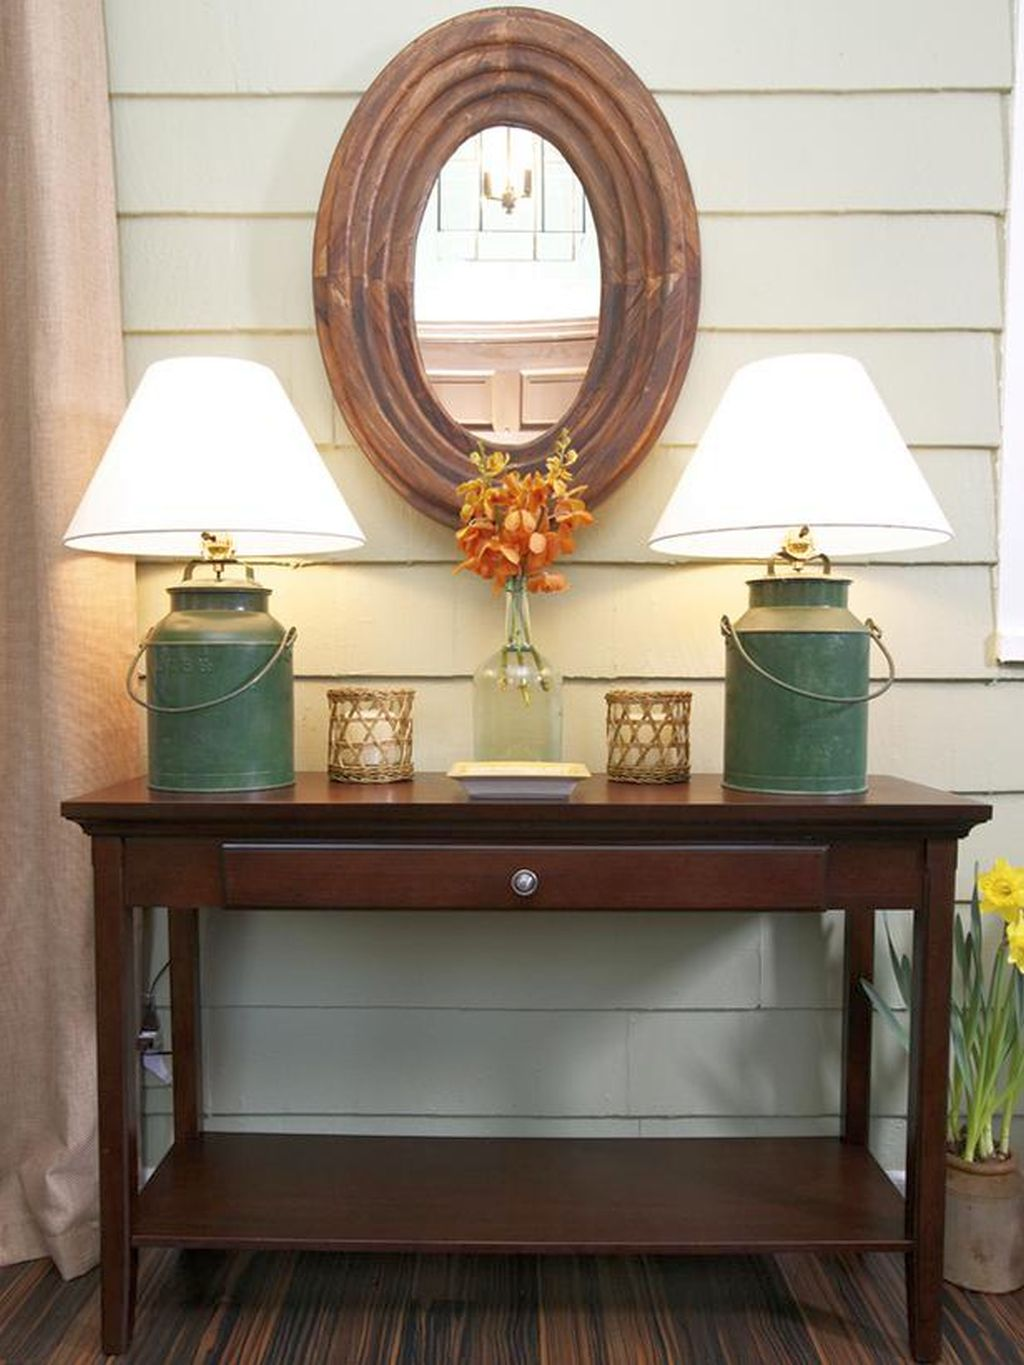 Foyer Table Oval : Rustic style small entry table ideas with oval mirror